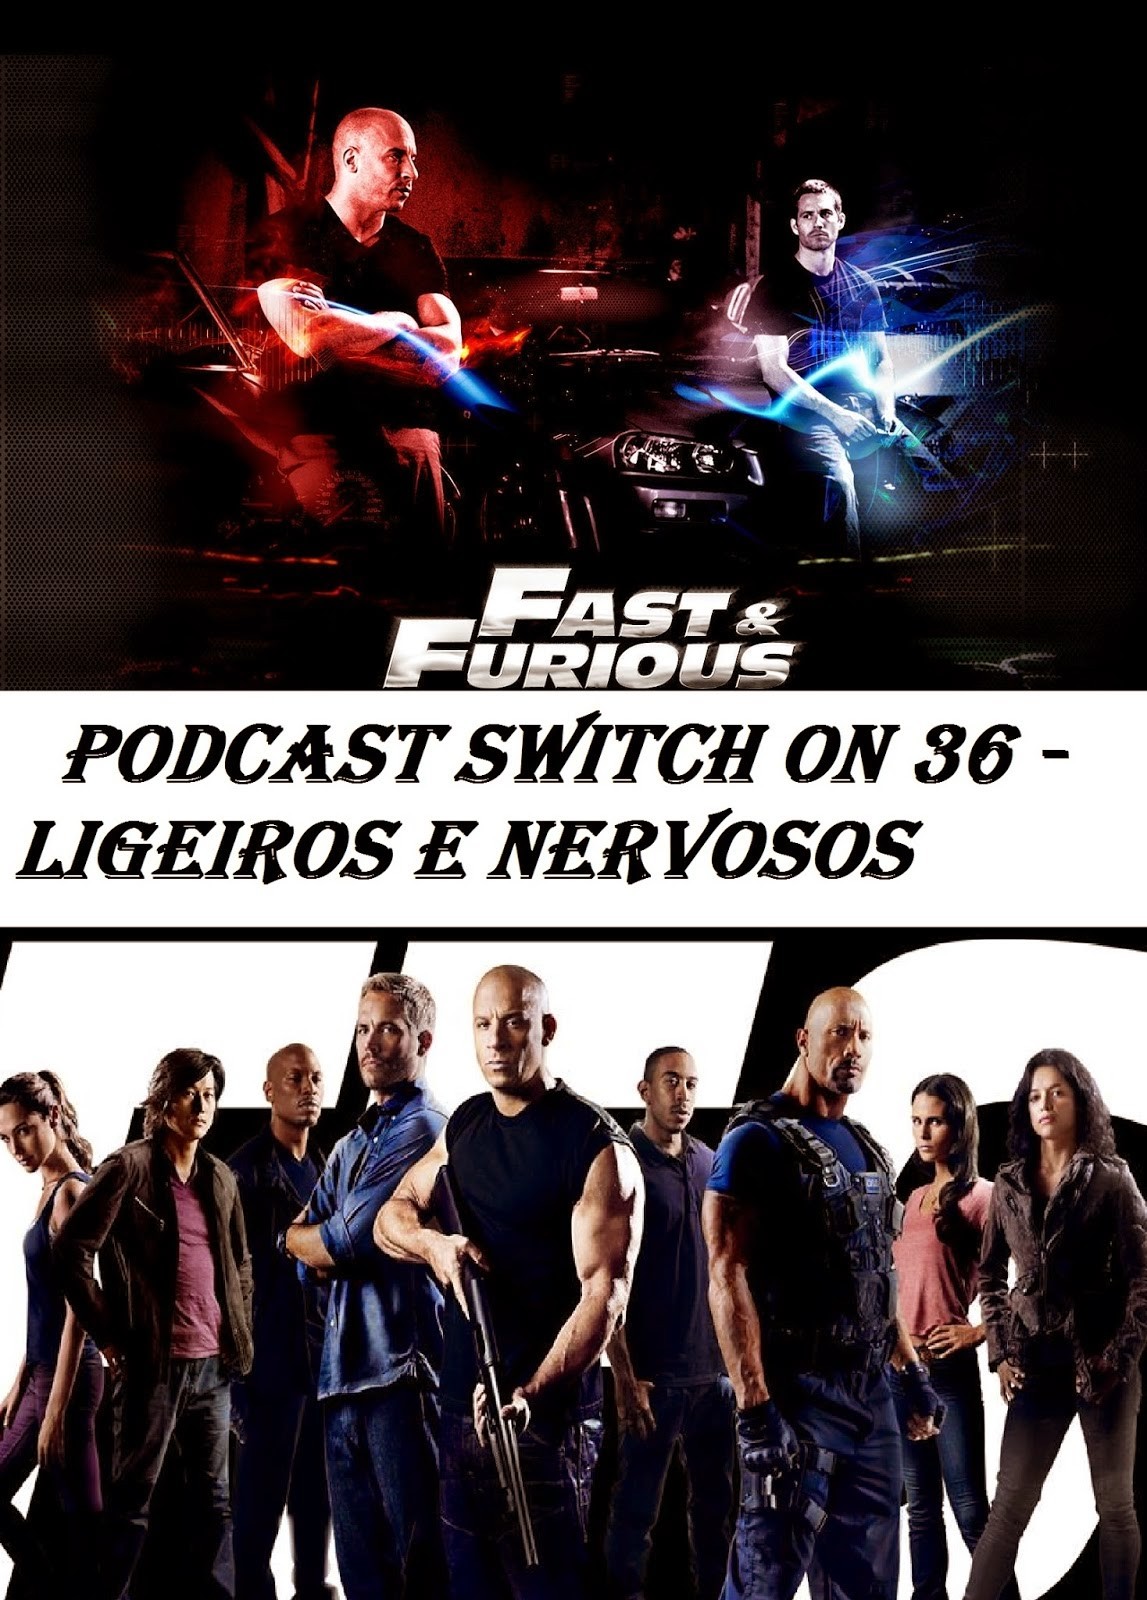 http://interruptornerd.blogspot.com.br/2014/10/podcast-switch-on-36-ligeiros-e-nervosos.html